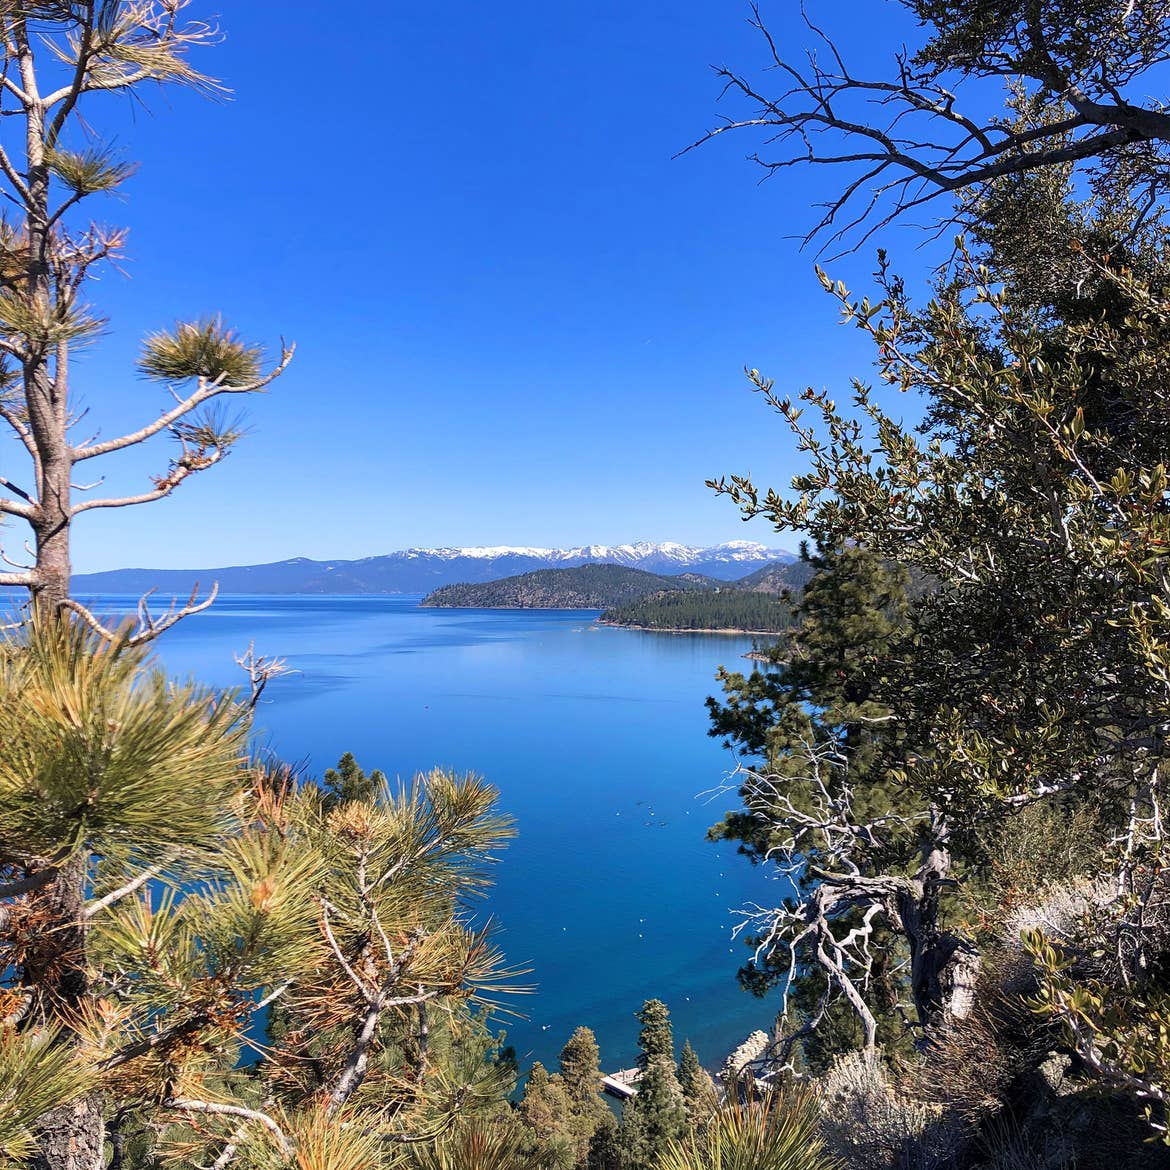 A view of the mountain range near our Tahoe Ridge Resort located in Lake Tahoe, Nevada.